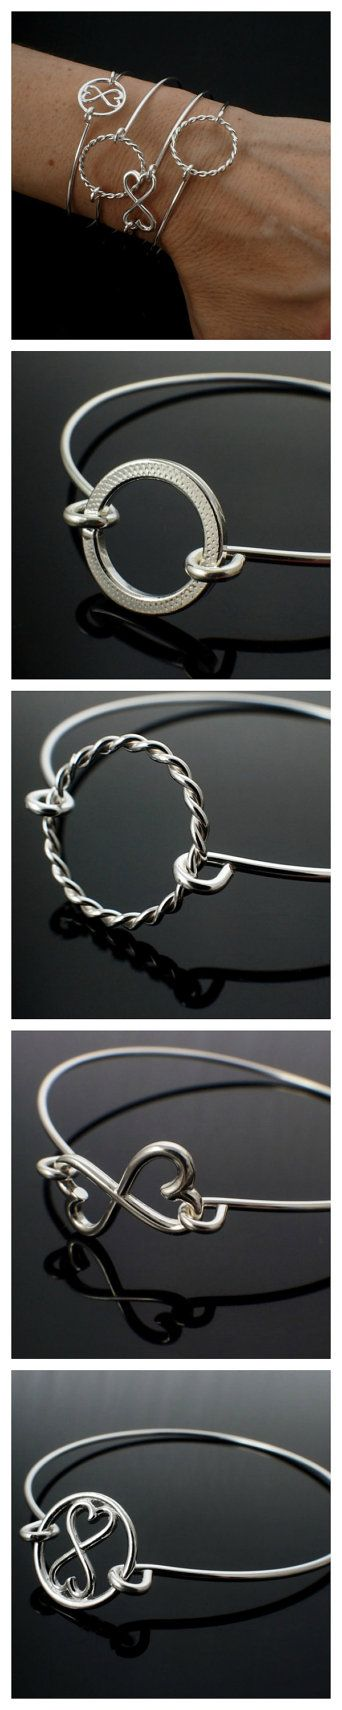 Sterling Silver Bangle Bracelets by unkamengifts on Etsy